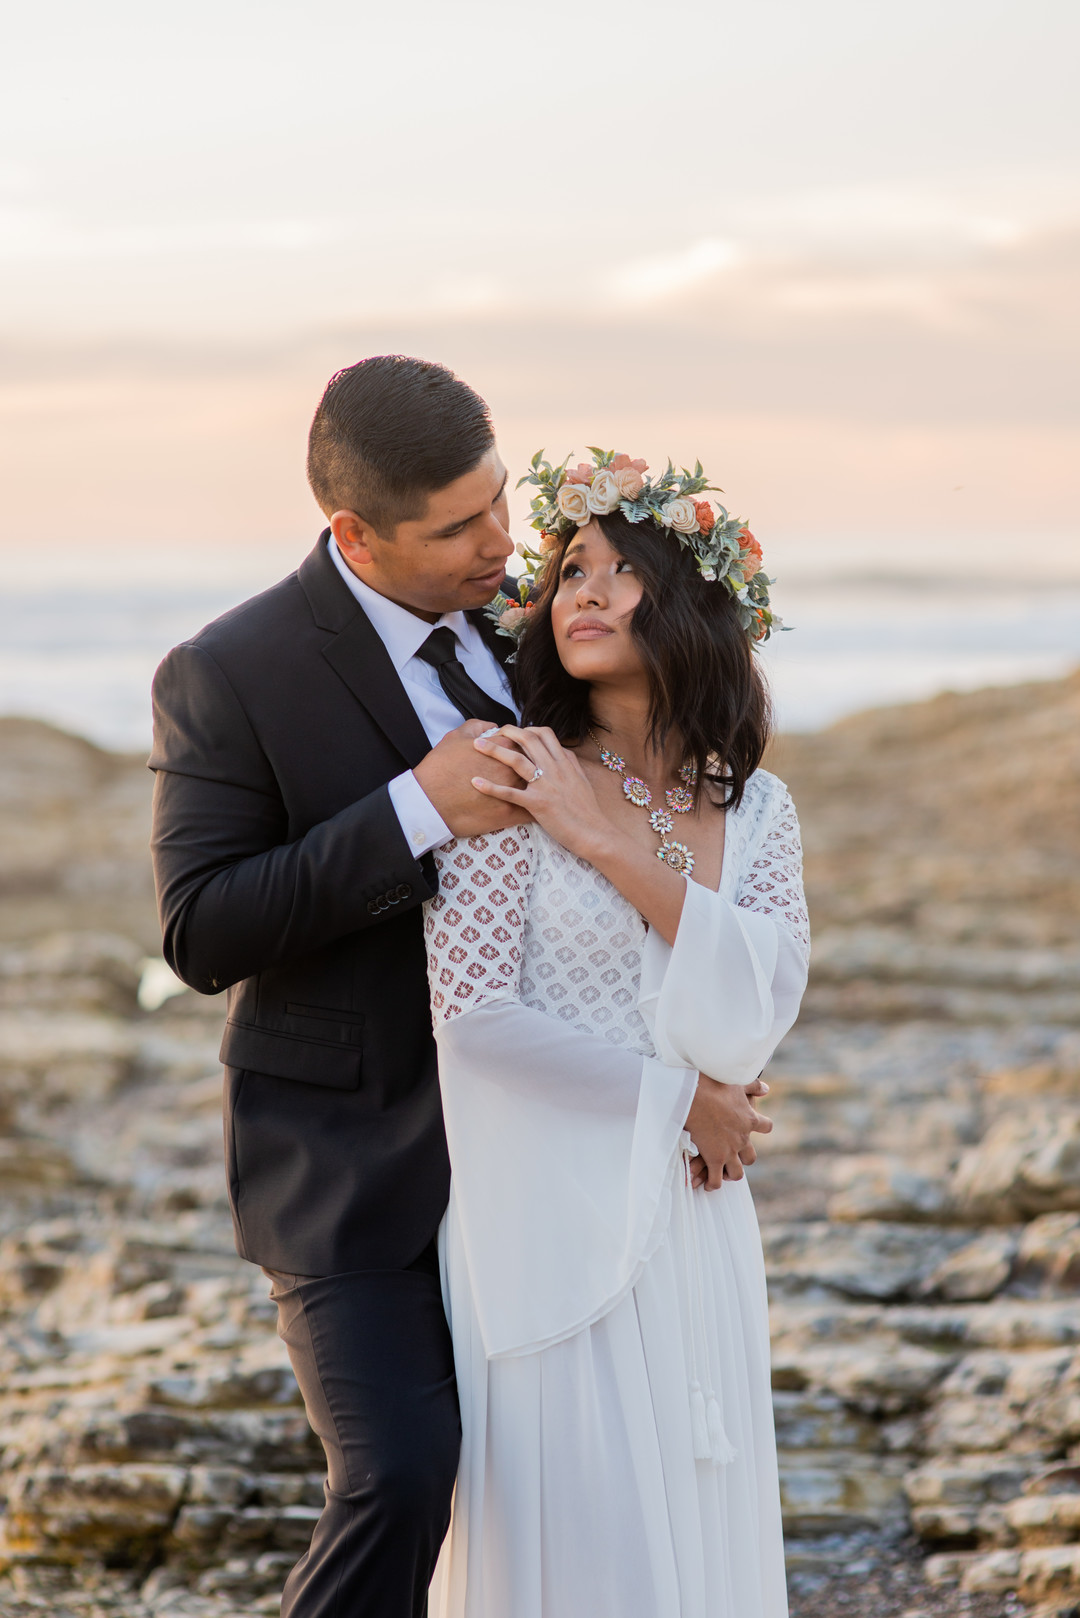 www.santabarbarawedding.com   Staci and Michael Photography   Montana de Oro State Park   EverAfter Wood Floral   Express   Makeup by Madisen Wickliffe   Bride and groom on beach